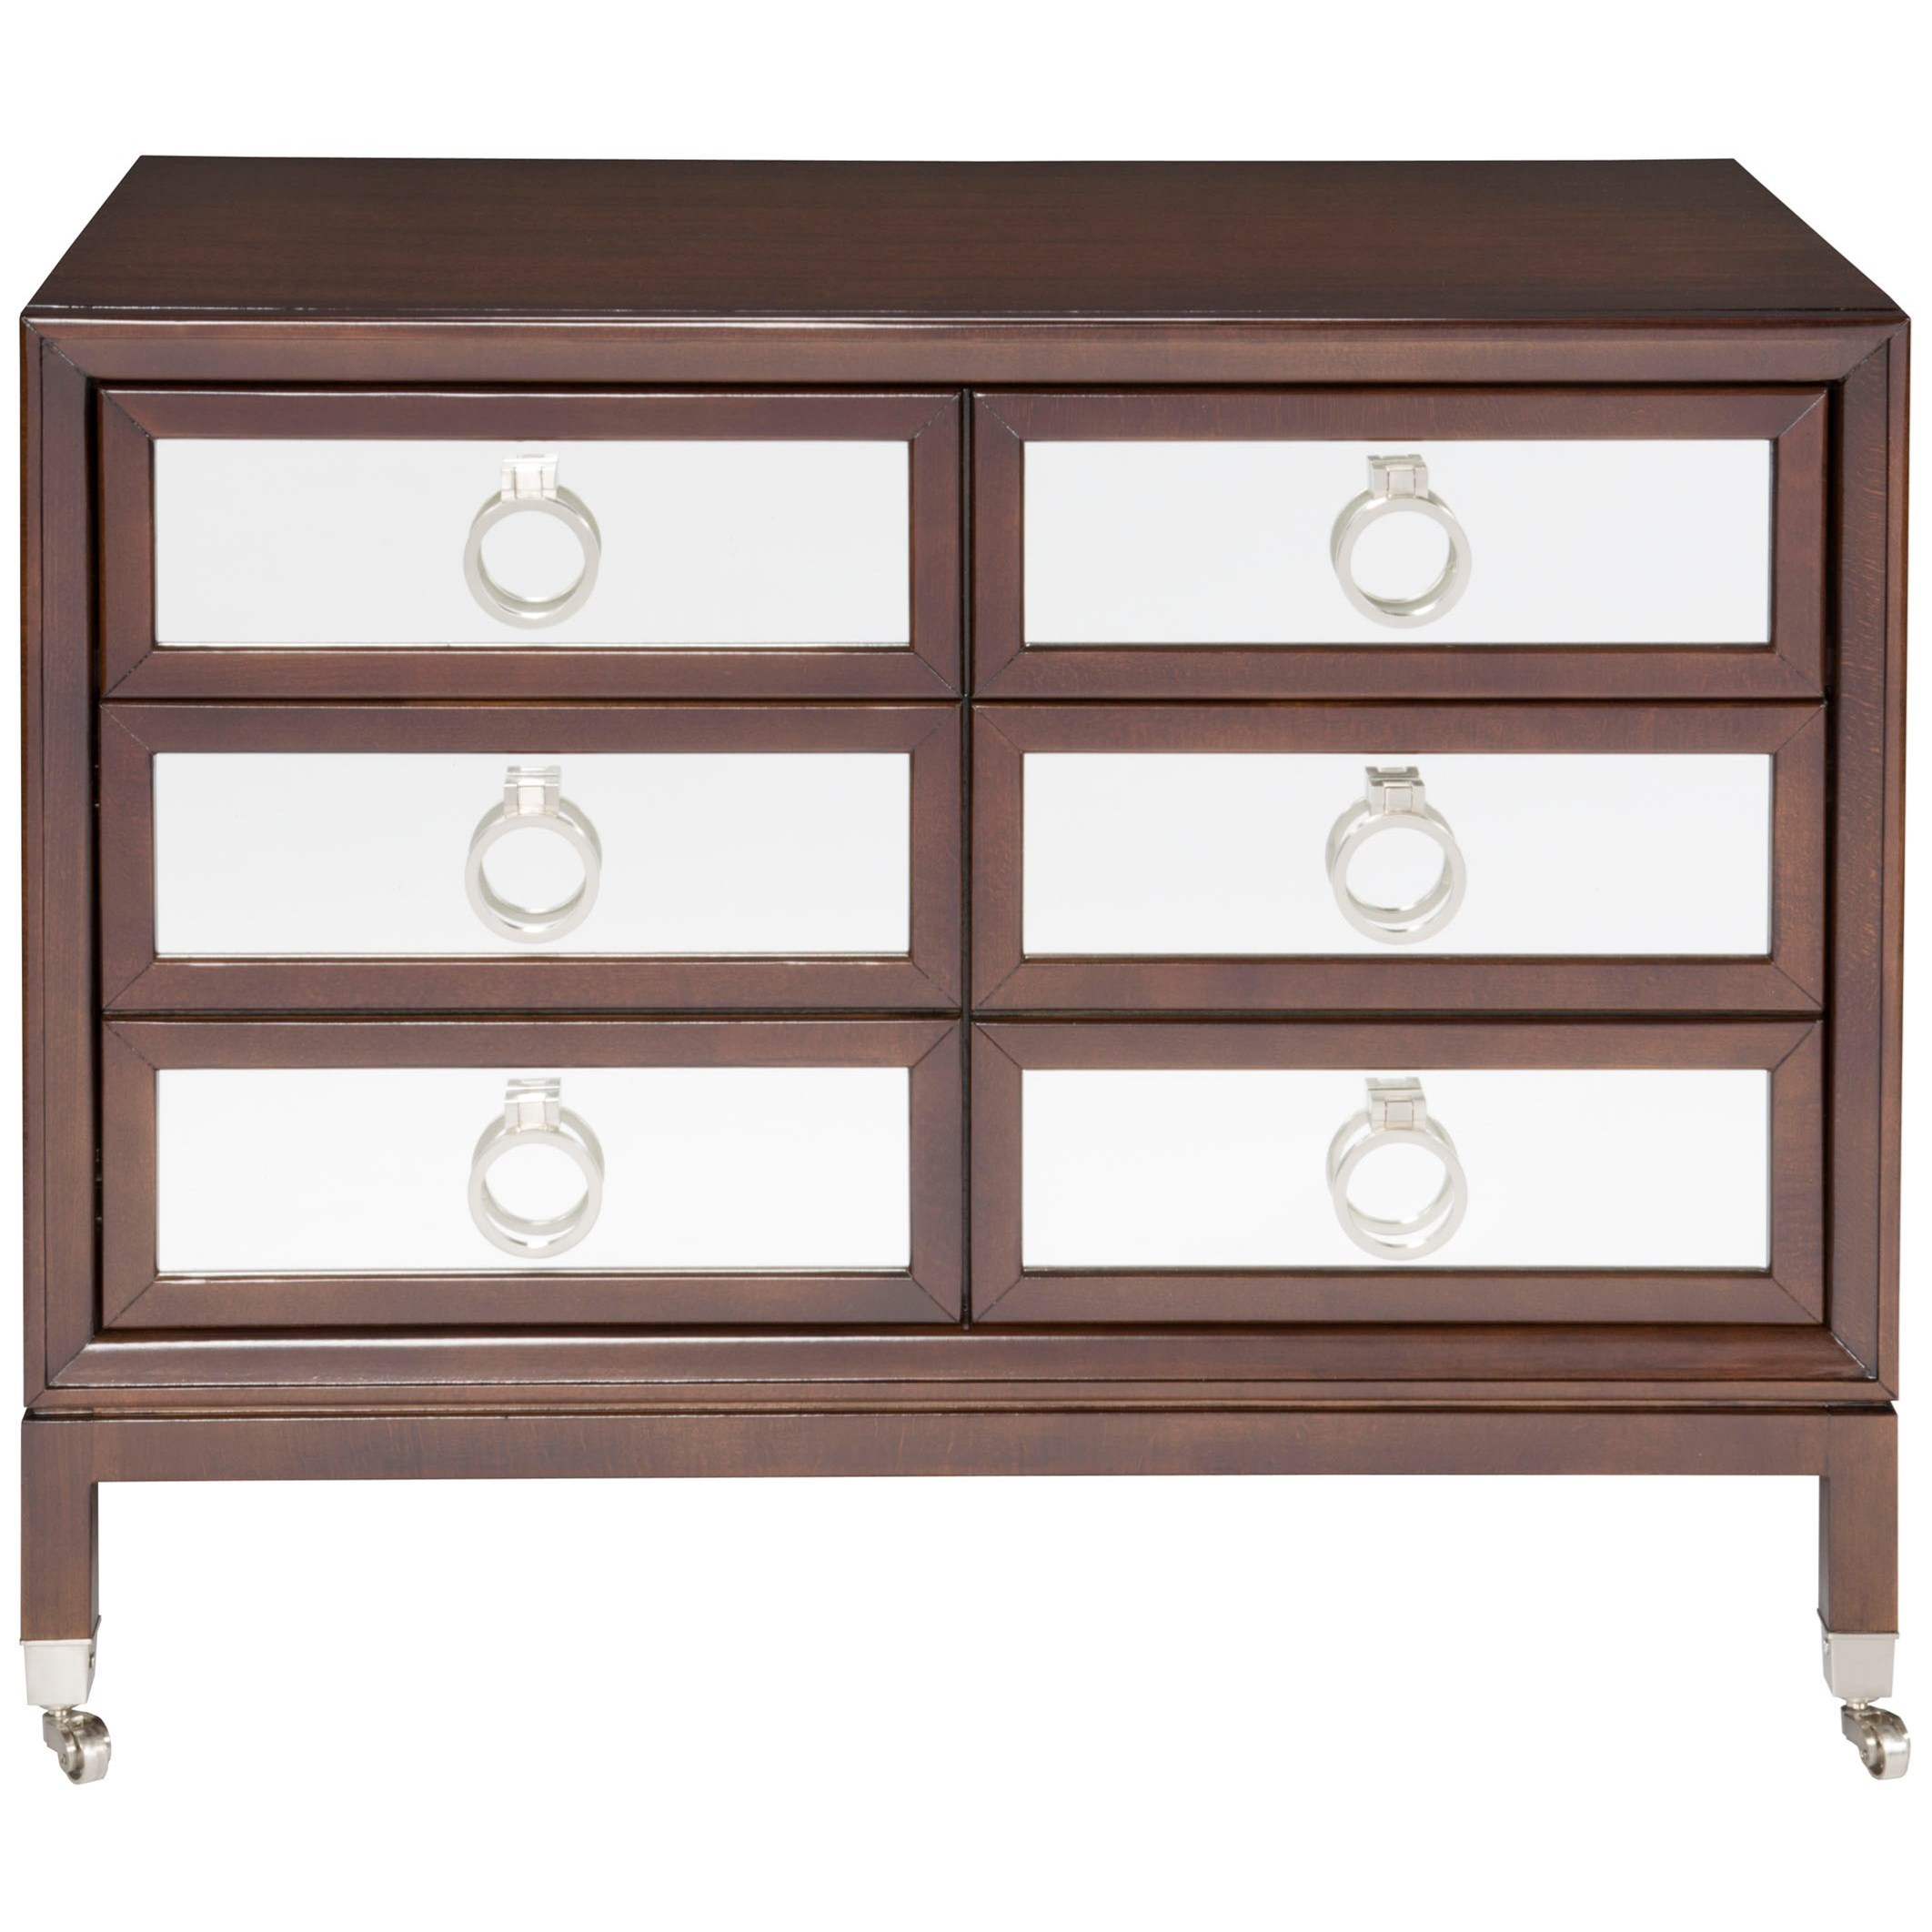 Accent and Entertainment Chests and Tables Accent Chest by Vanguard Furniture at Sprintz Furniture